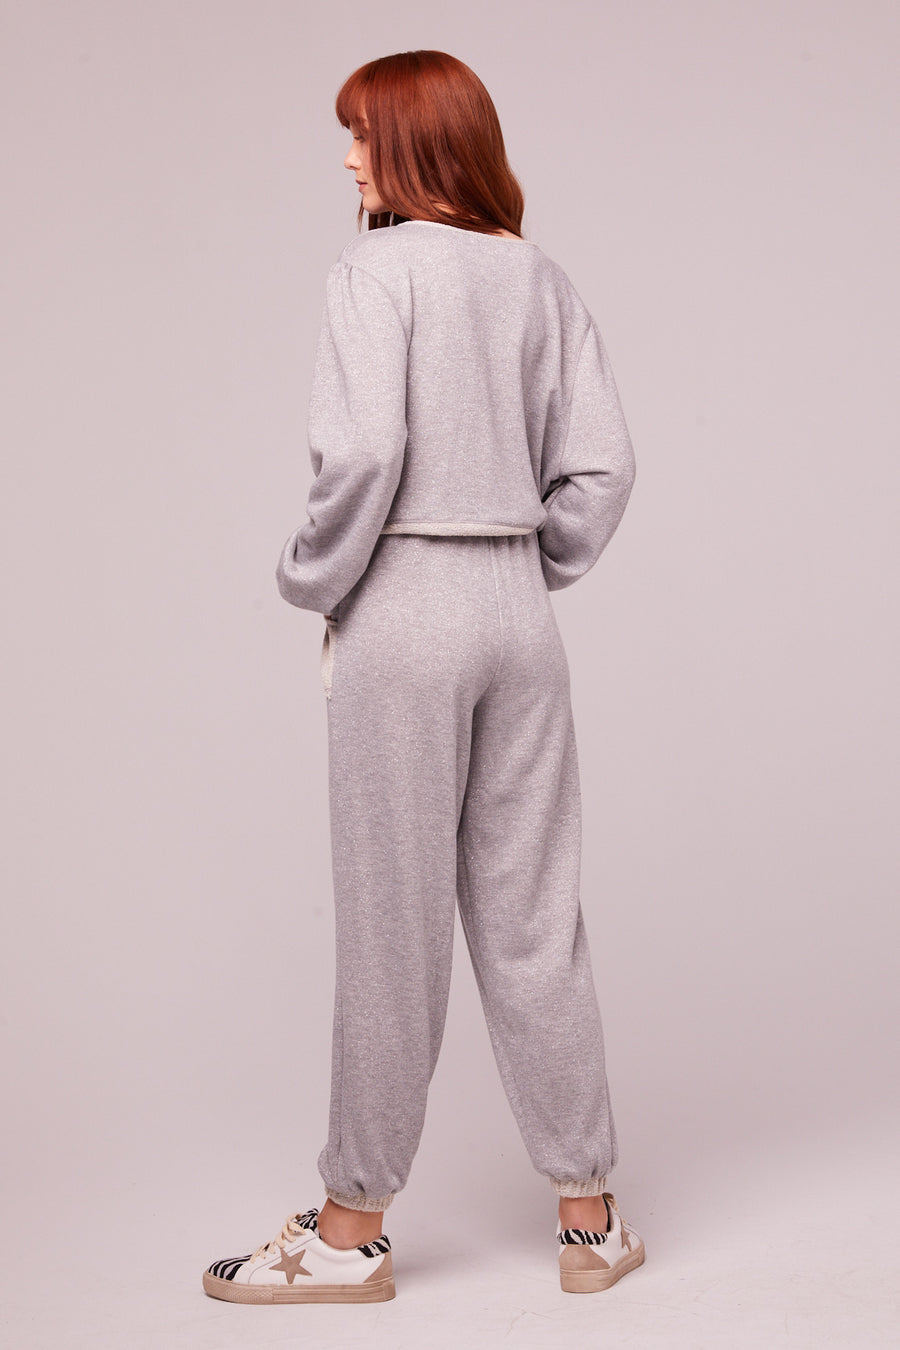 Loy Heather Gray Shimmer Joggers Master